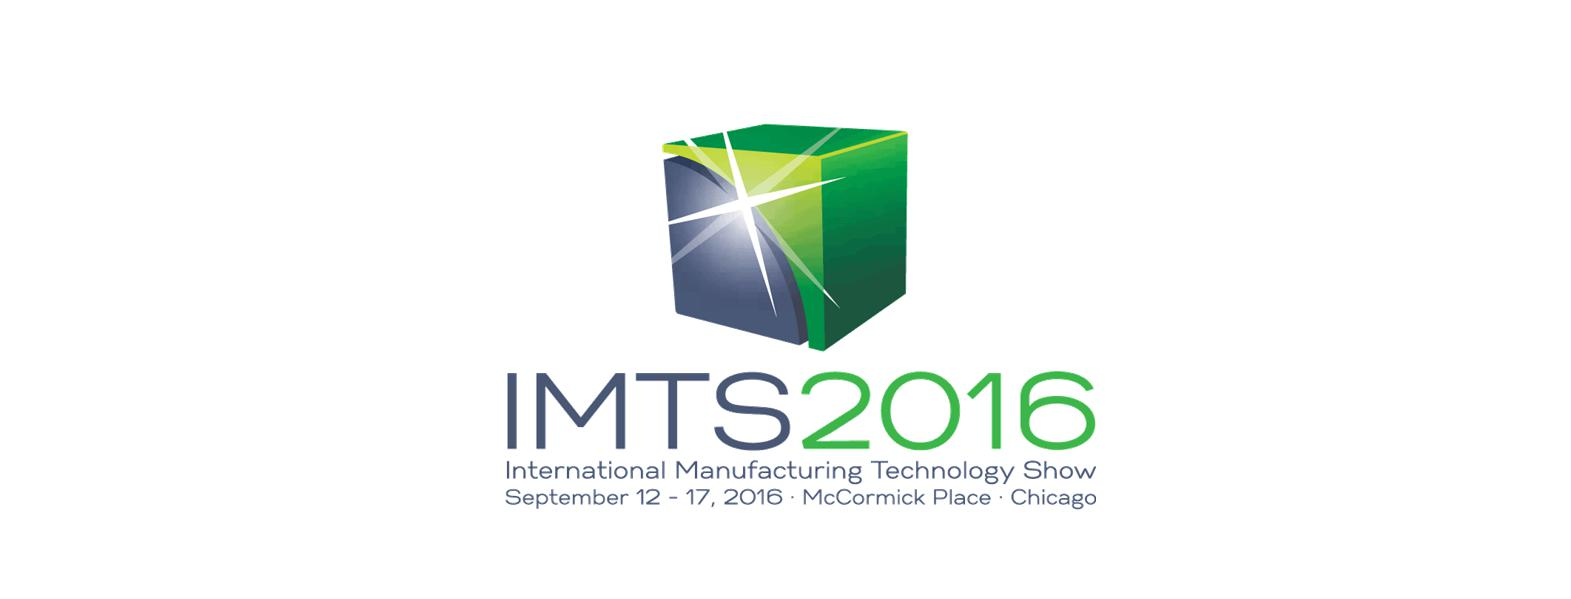 The International Manufacturing Technology Show 2016